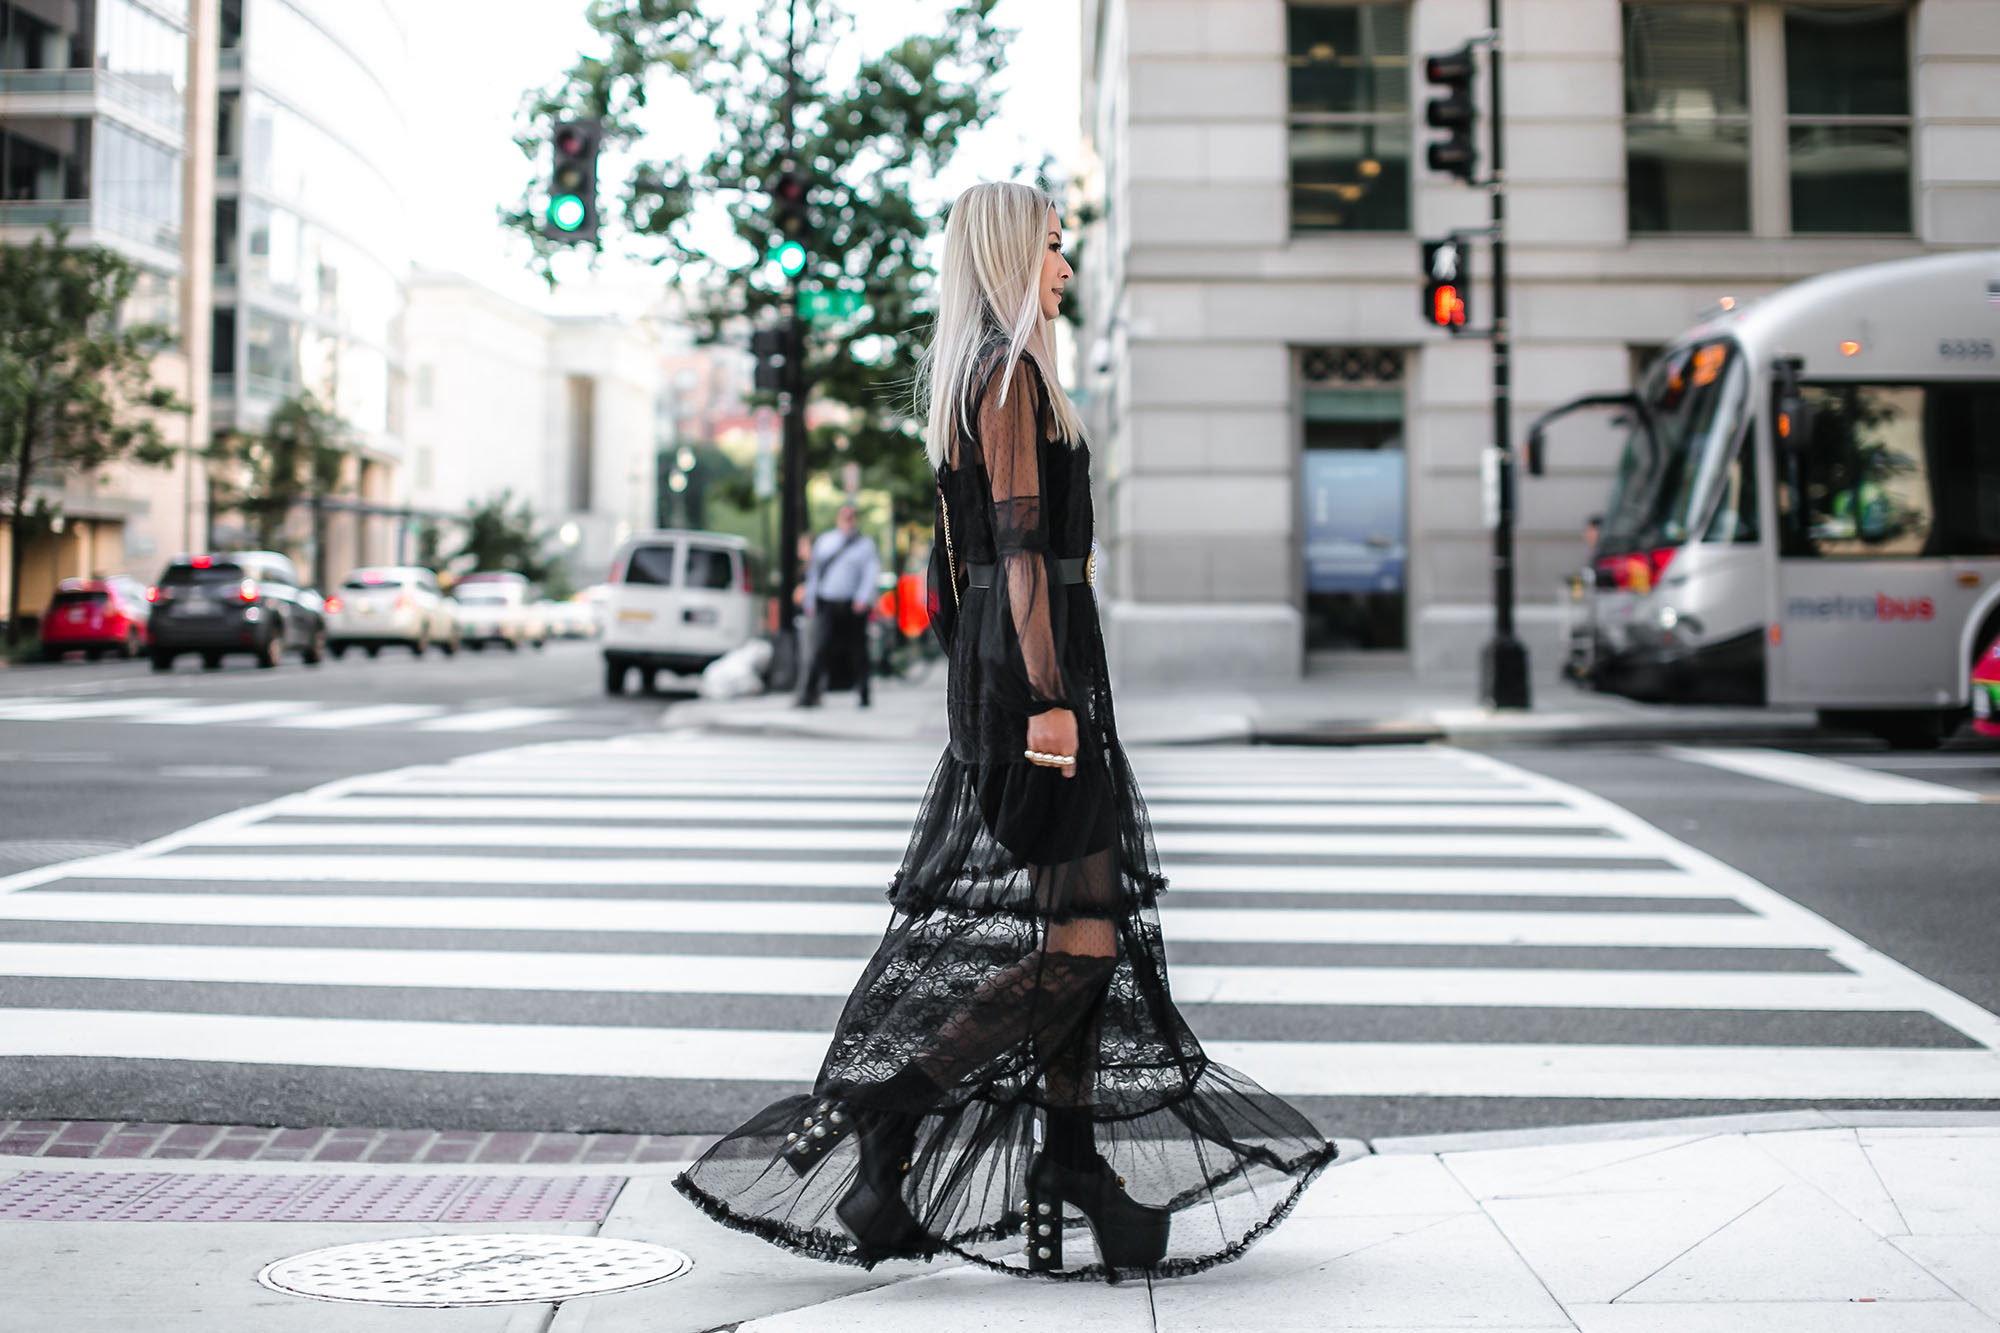 Anchyi Adorned fashion blogger street style in ASOS sheer maxi dress, Gucci pearly rings, belt and shoes, and Saint Laurent bag.